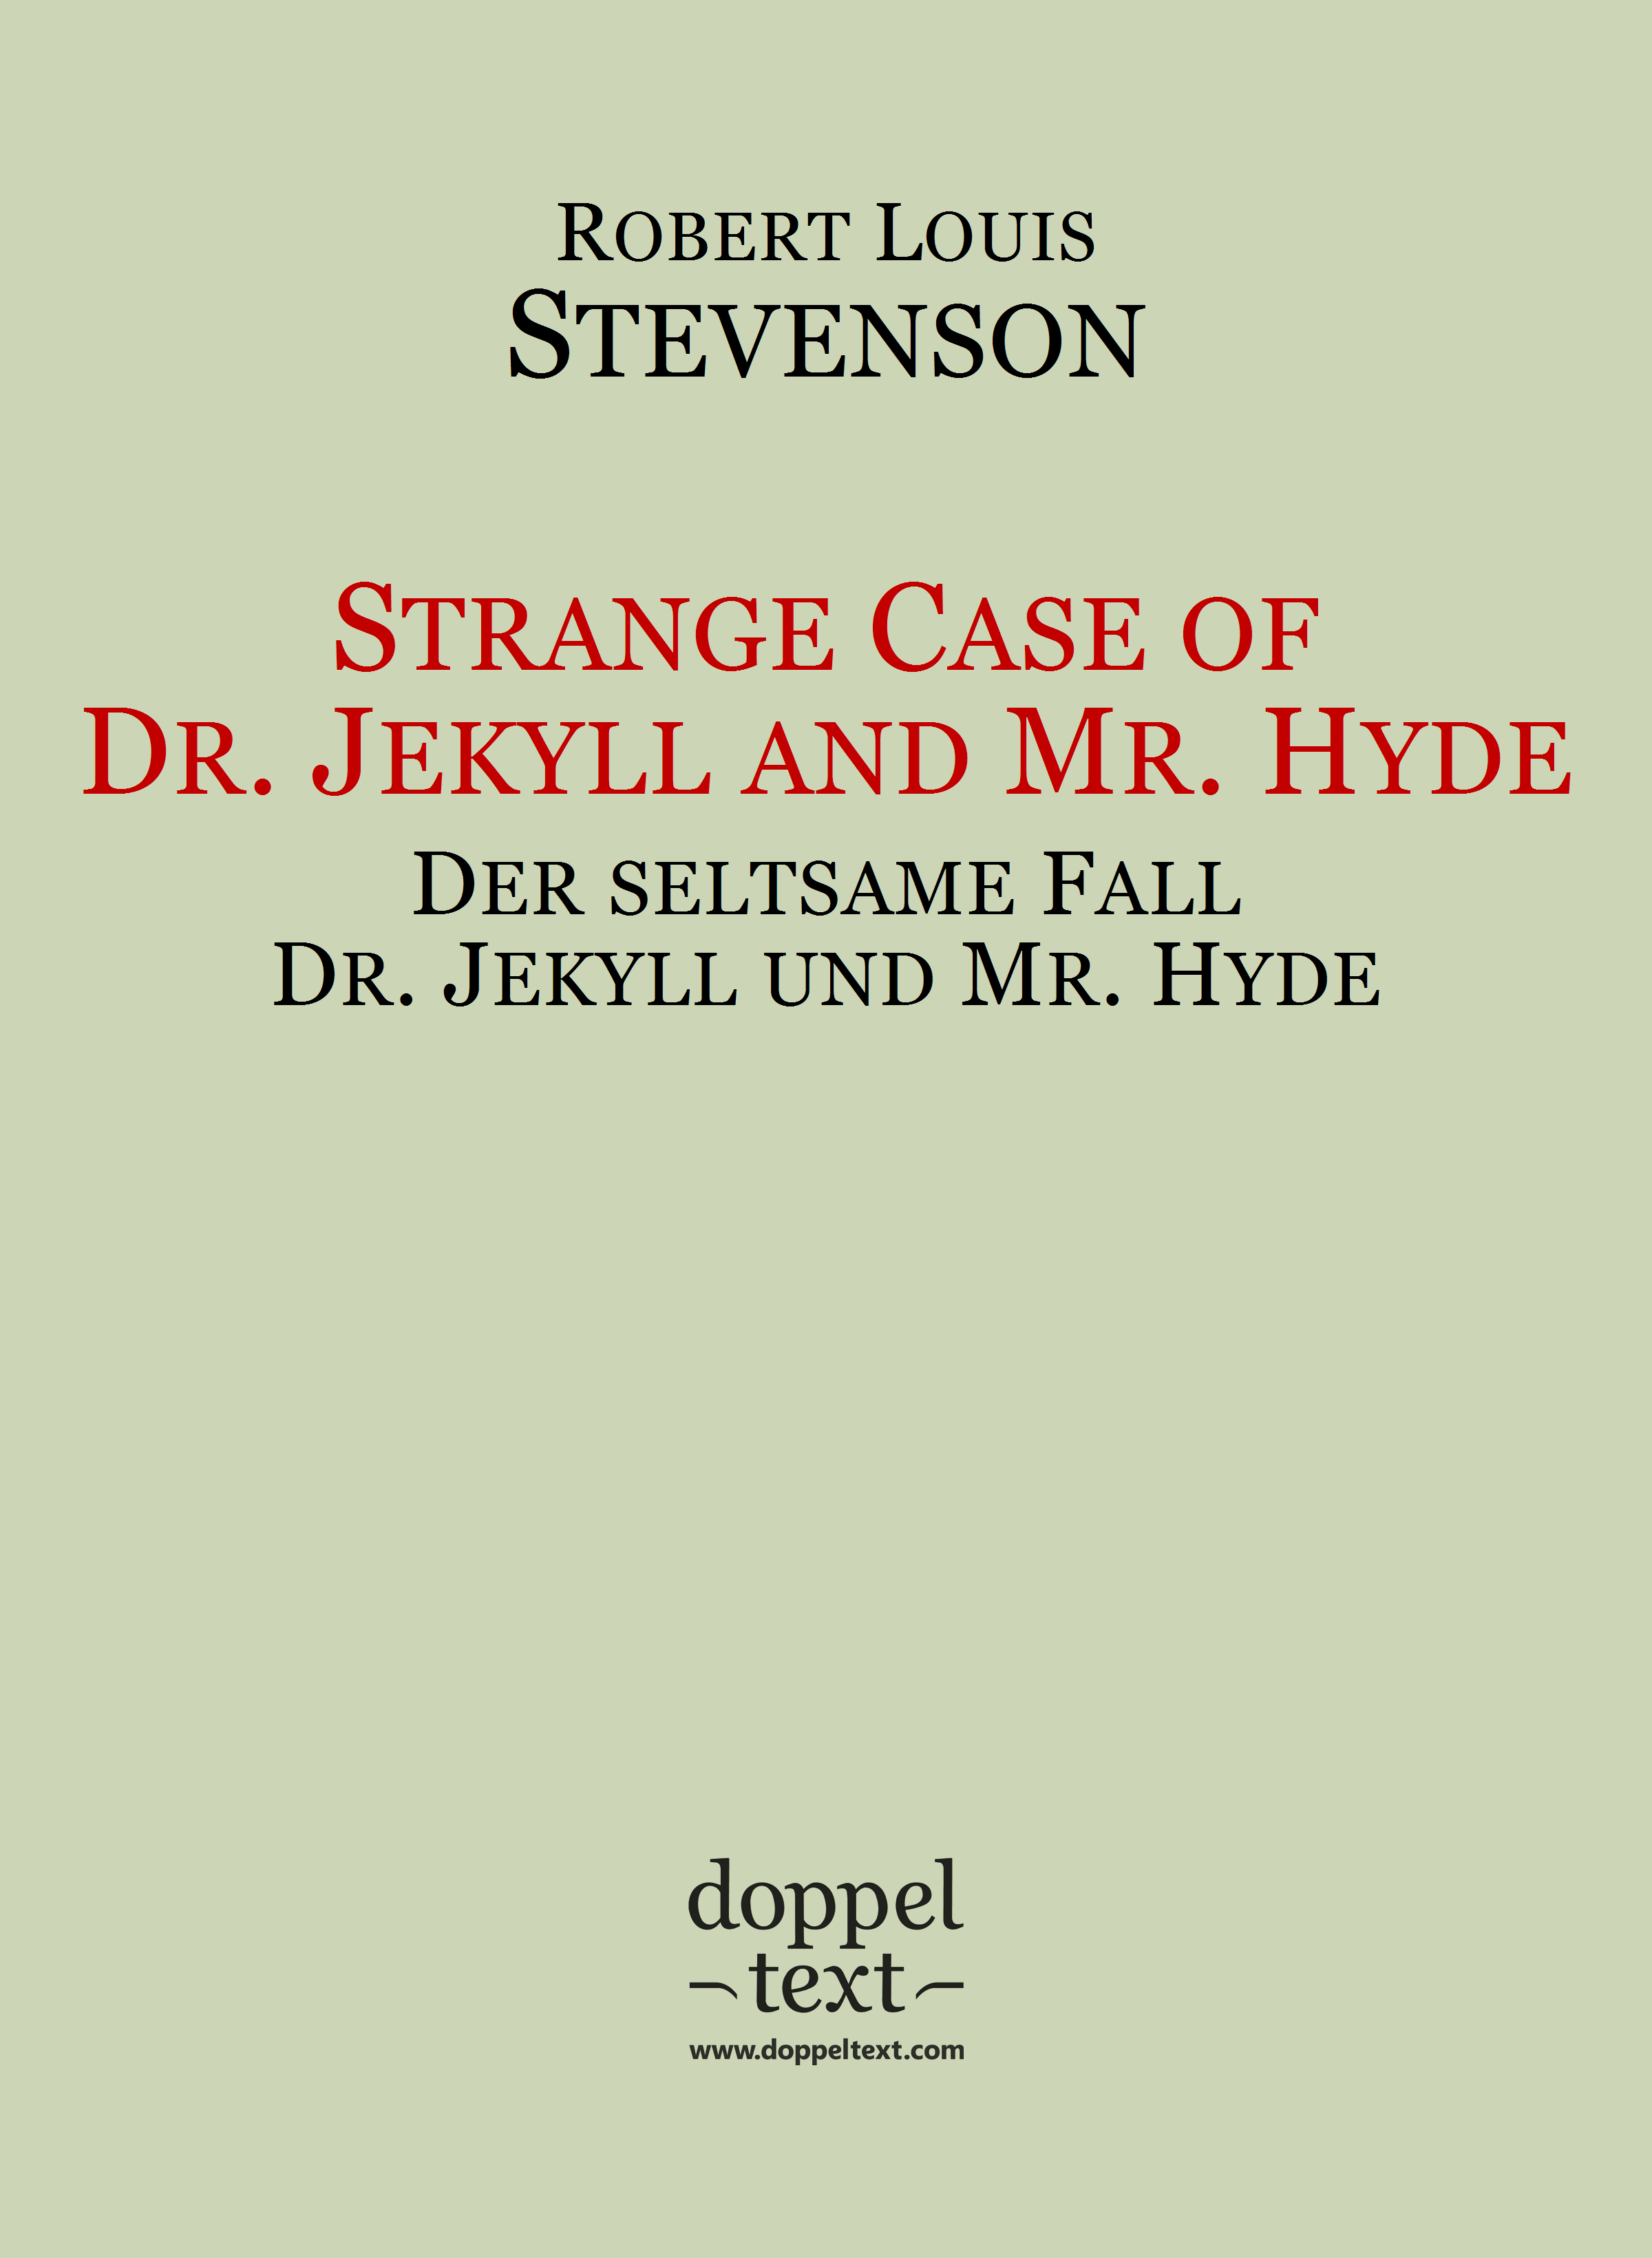 Strange Case of Dr. Jekyll and Mr. Hyde / Der seltsame Fall Dr. Jekyll und Mr. Hyde – zweisprachig Englisch-Deutsch / Bilingual English-German Edition